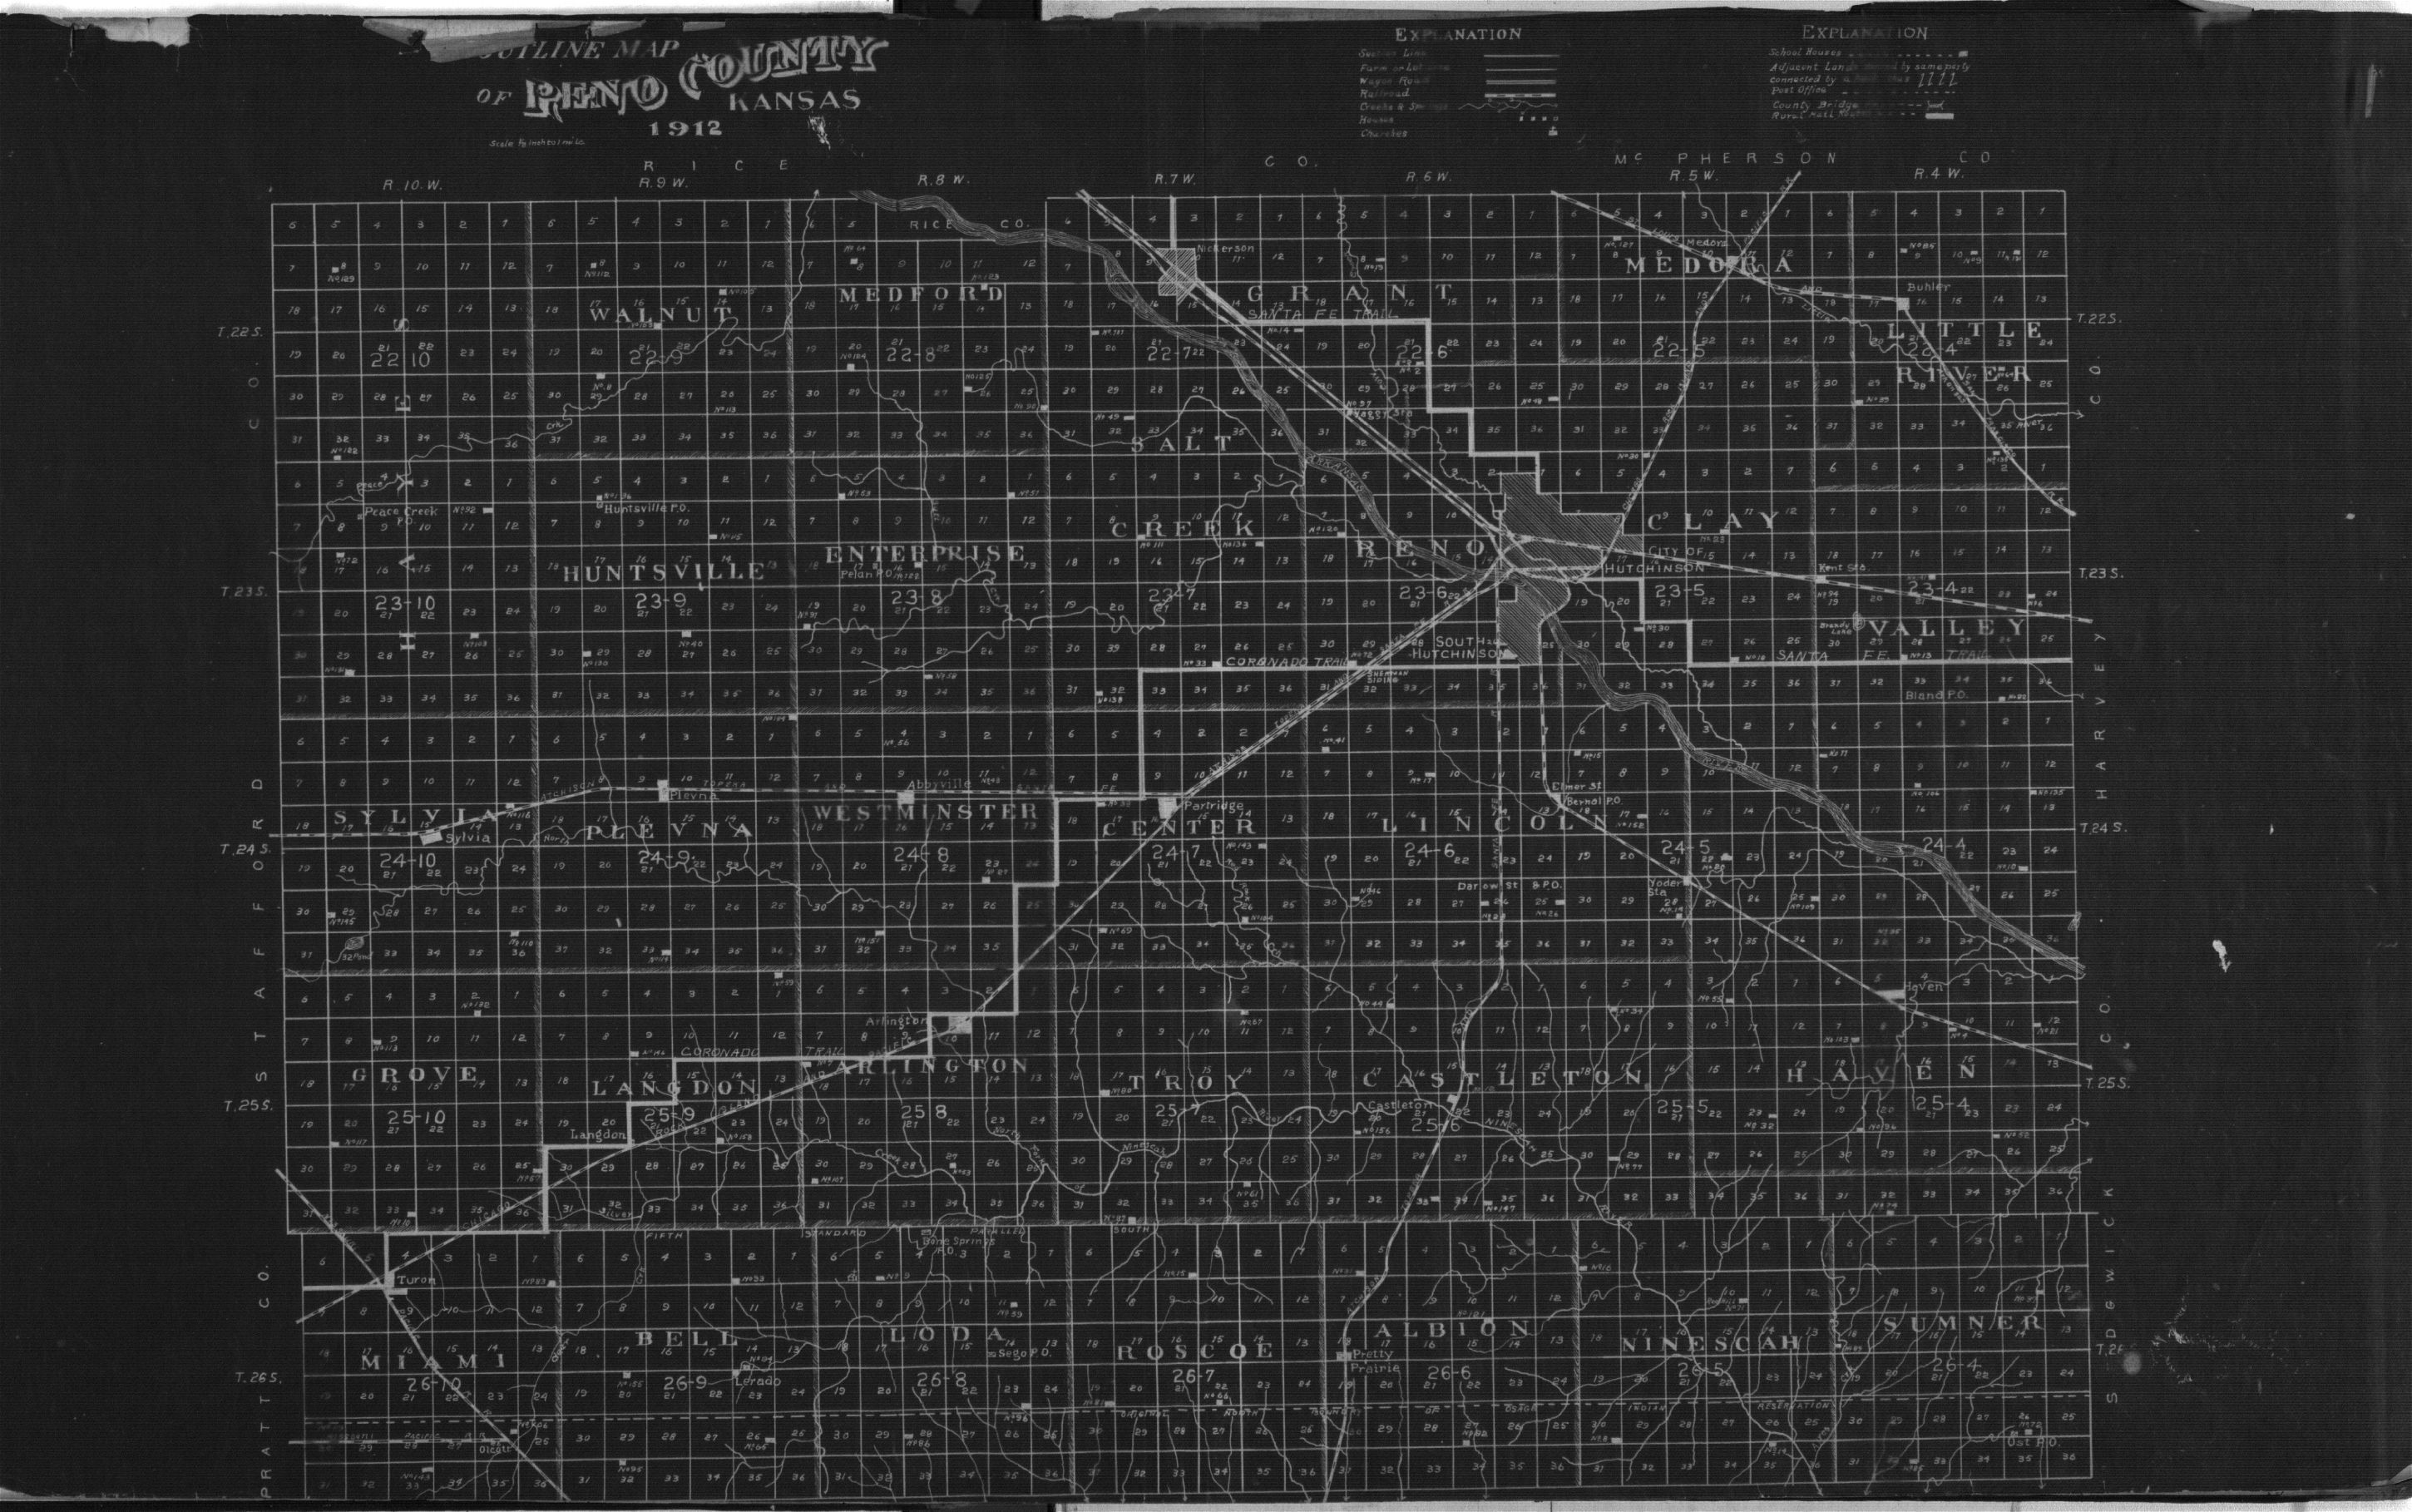 Plat book of Reno County, Kansas - Outline Map of Reno Co